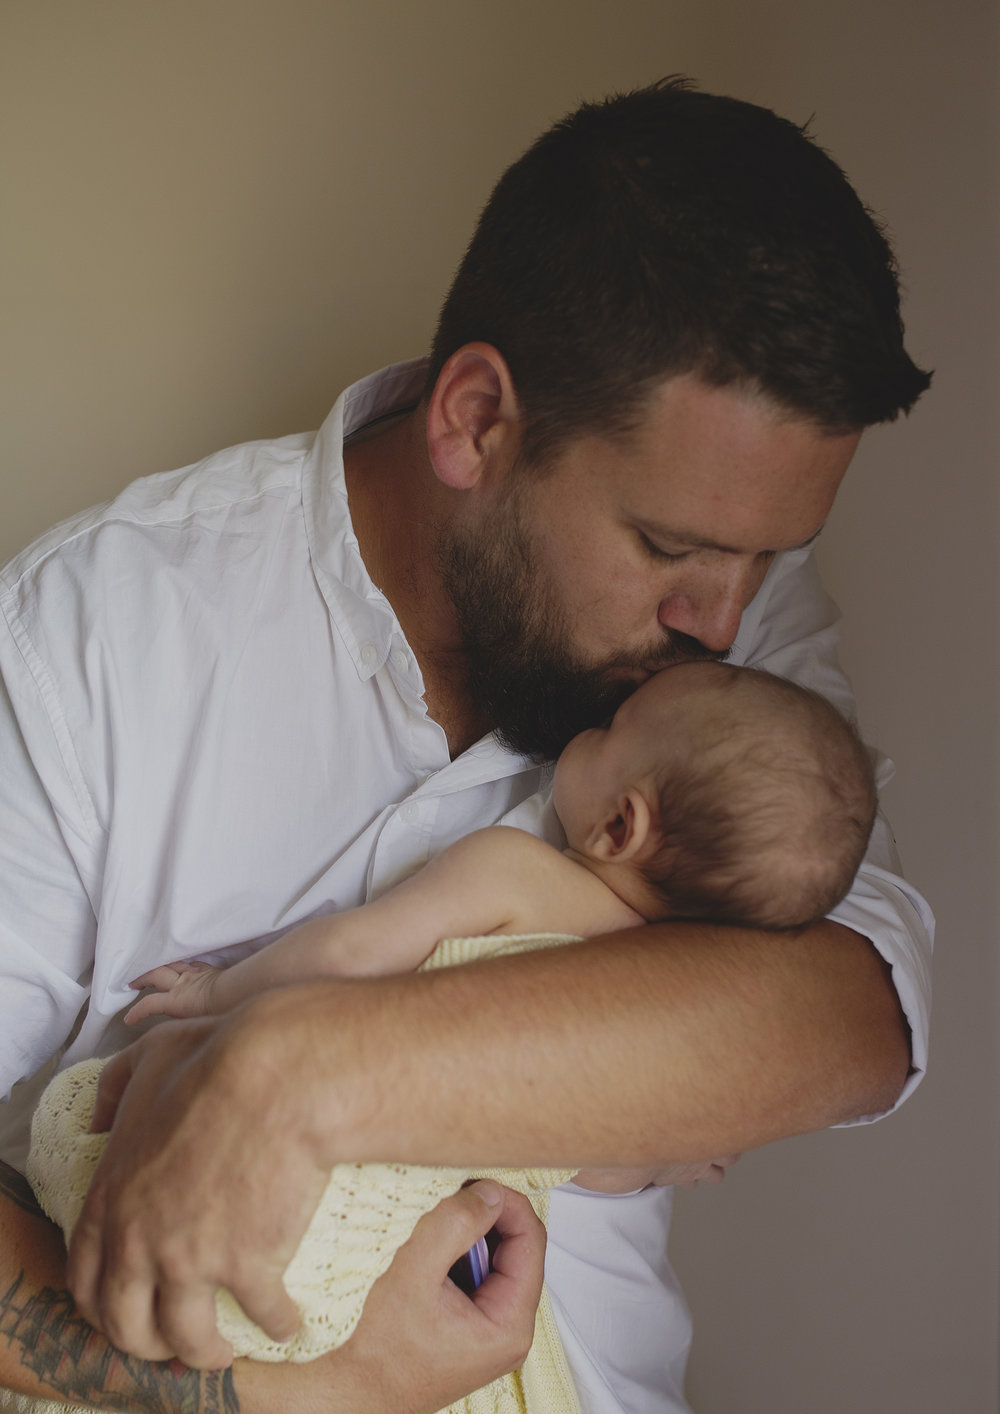 Daddy loves for his newborn baby girl